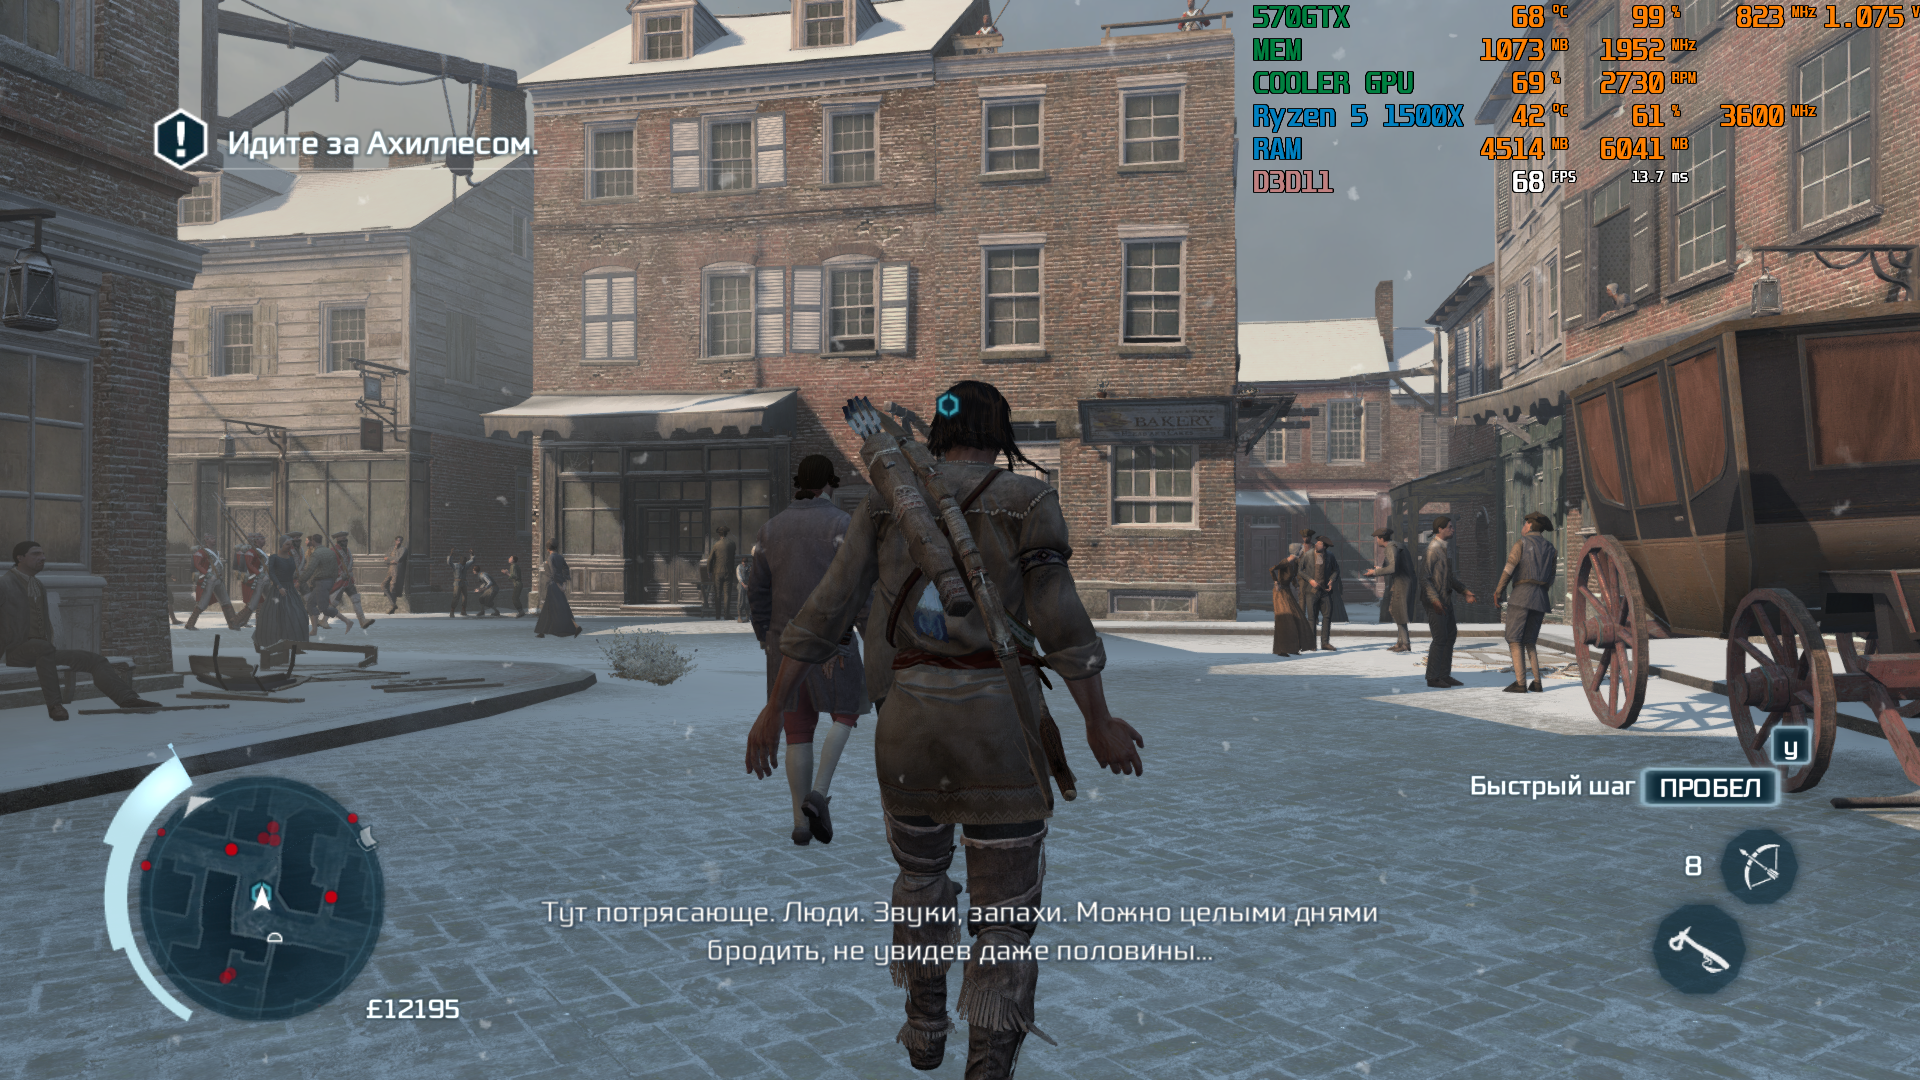 AC3SP_2018_09_30_19_53_35_844.png - Assassin's Creed 3